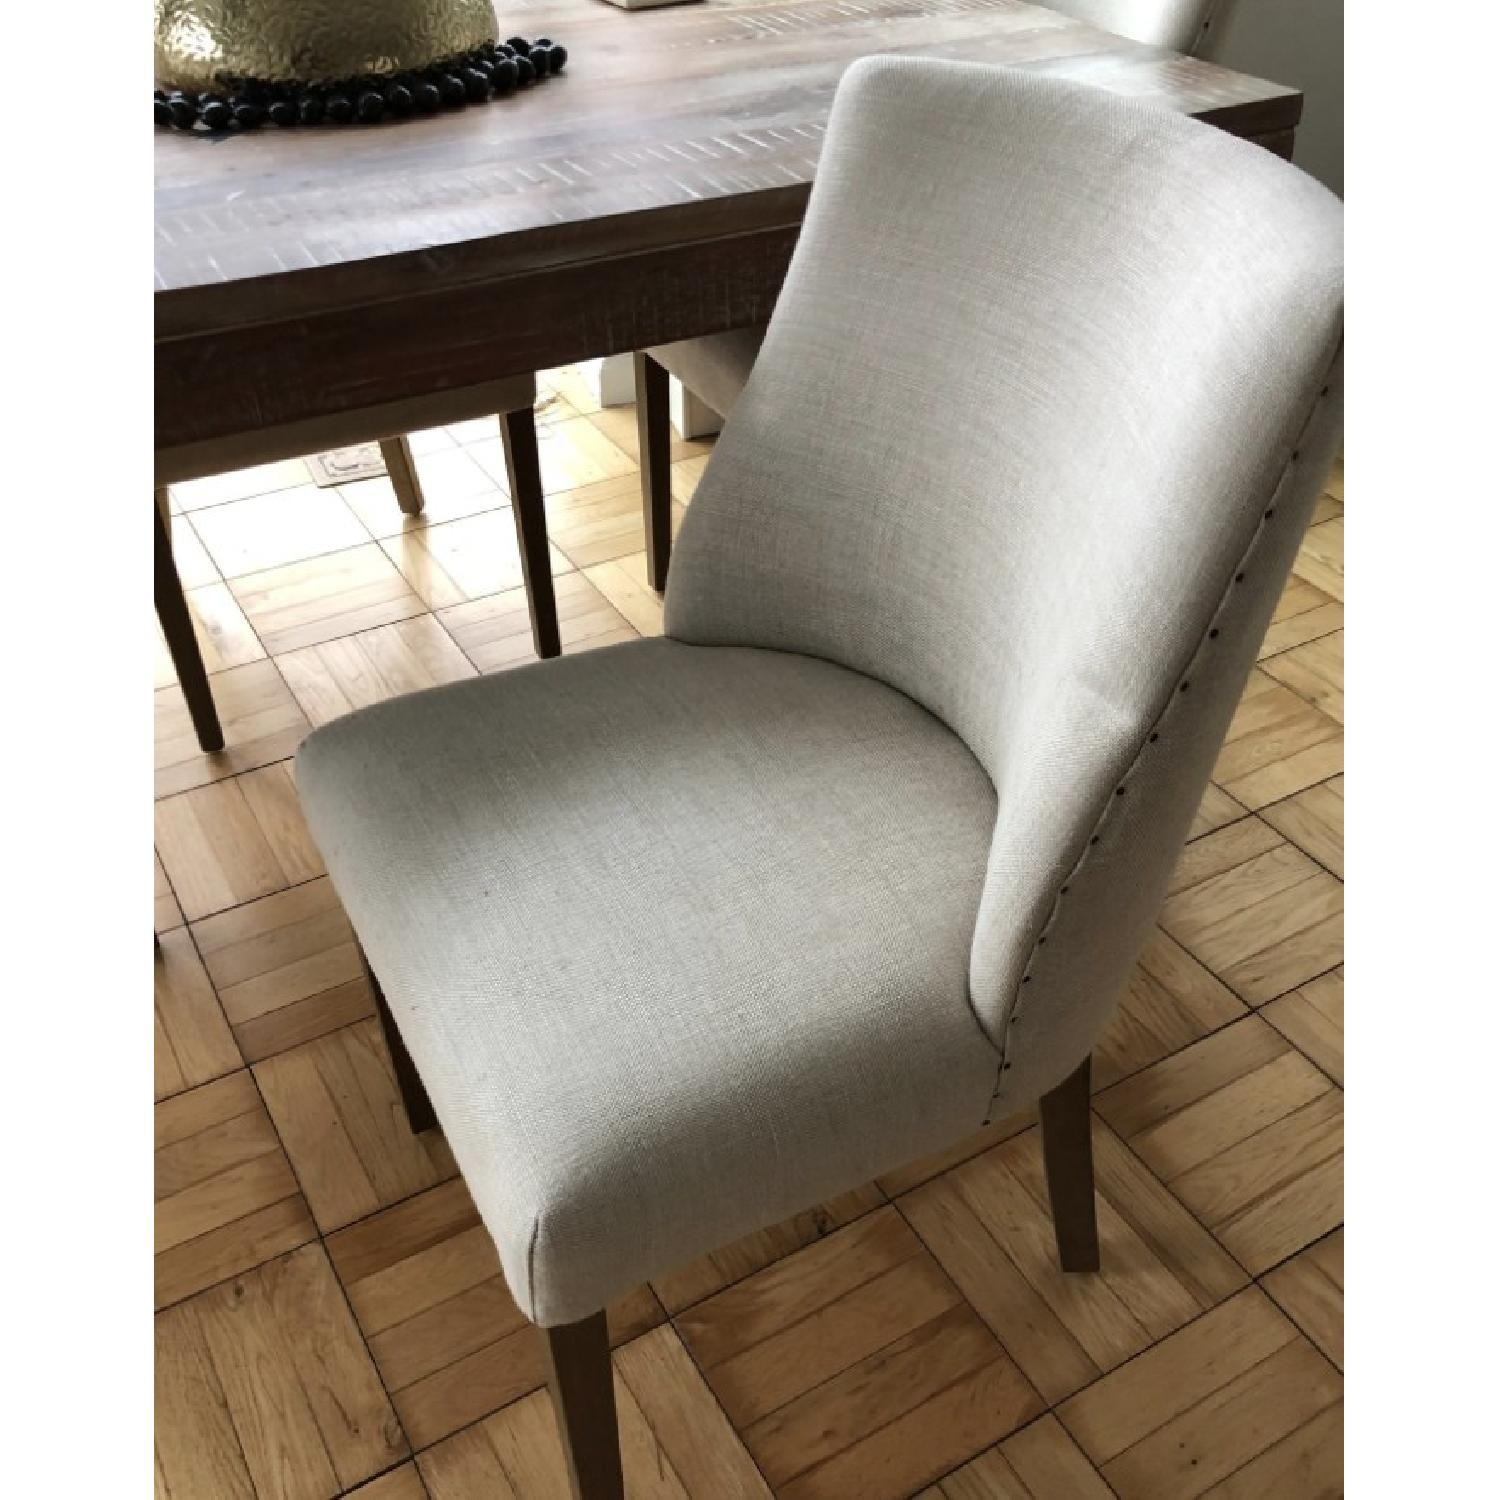 Restoration Hardware 1940S French Barrelback Fabric Chair - image-2